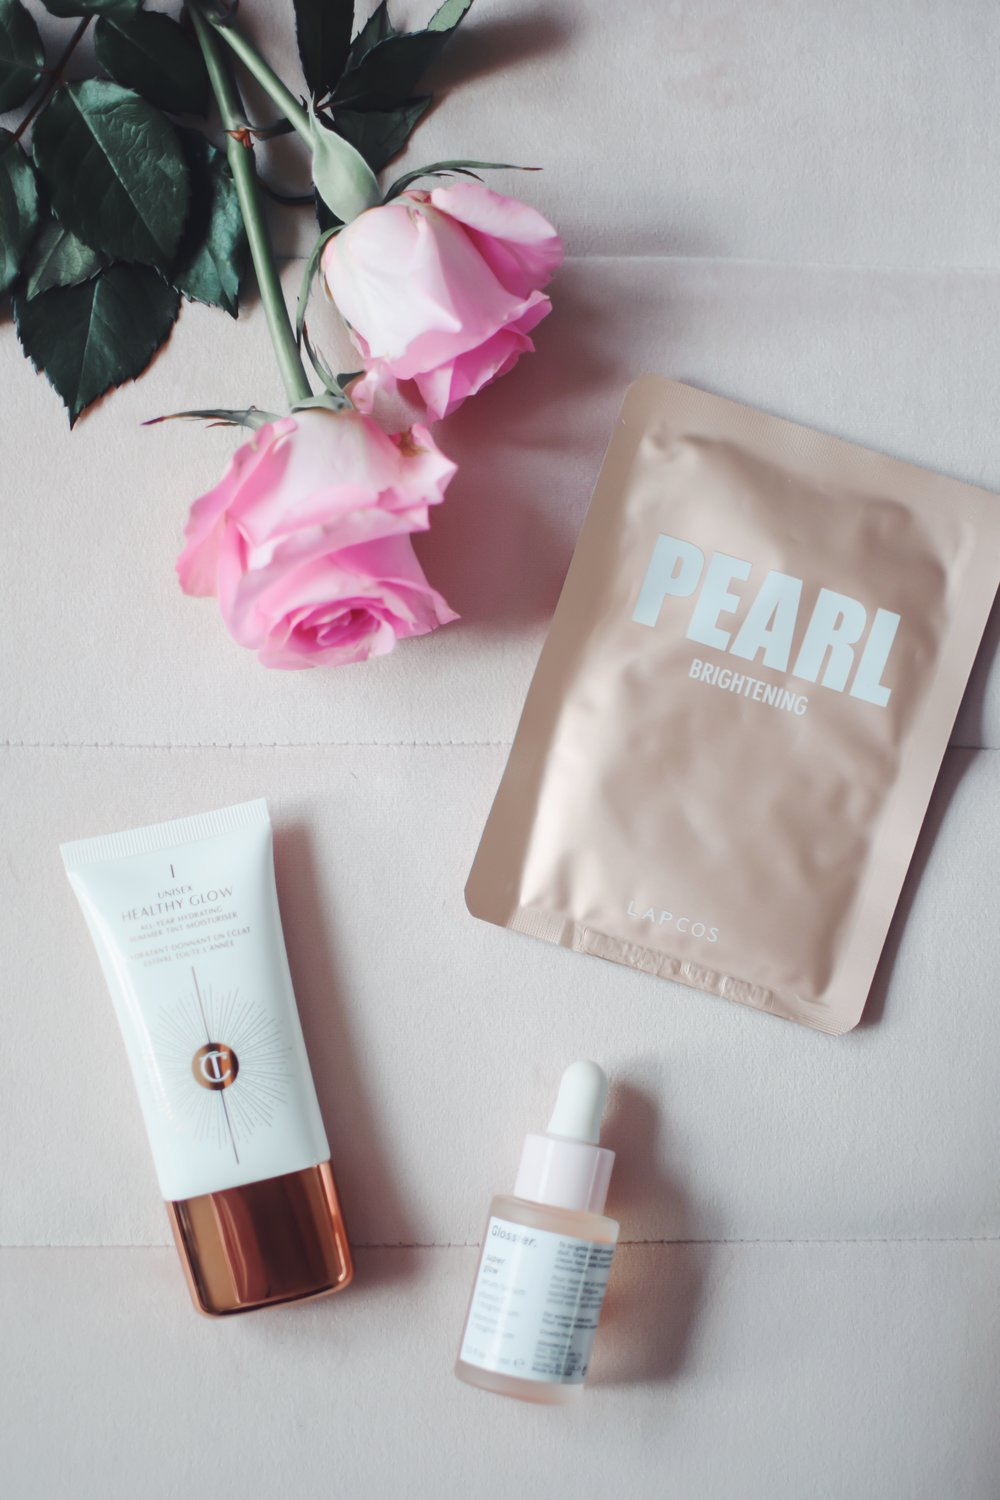 Charlotte Tilbury Healthy Glow Tinted Moisturizer Review | Pine Barren Beauty | the best tinted moisturizer, beauty product review, beauty product flat lay, Charlotte Tilbury